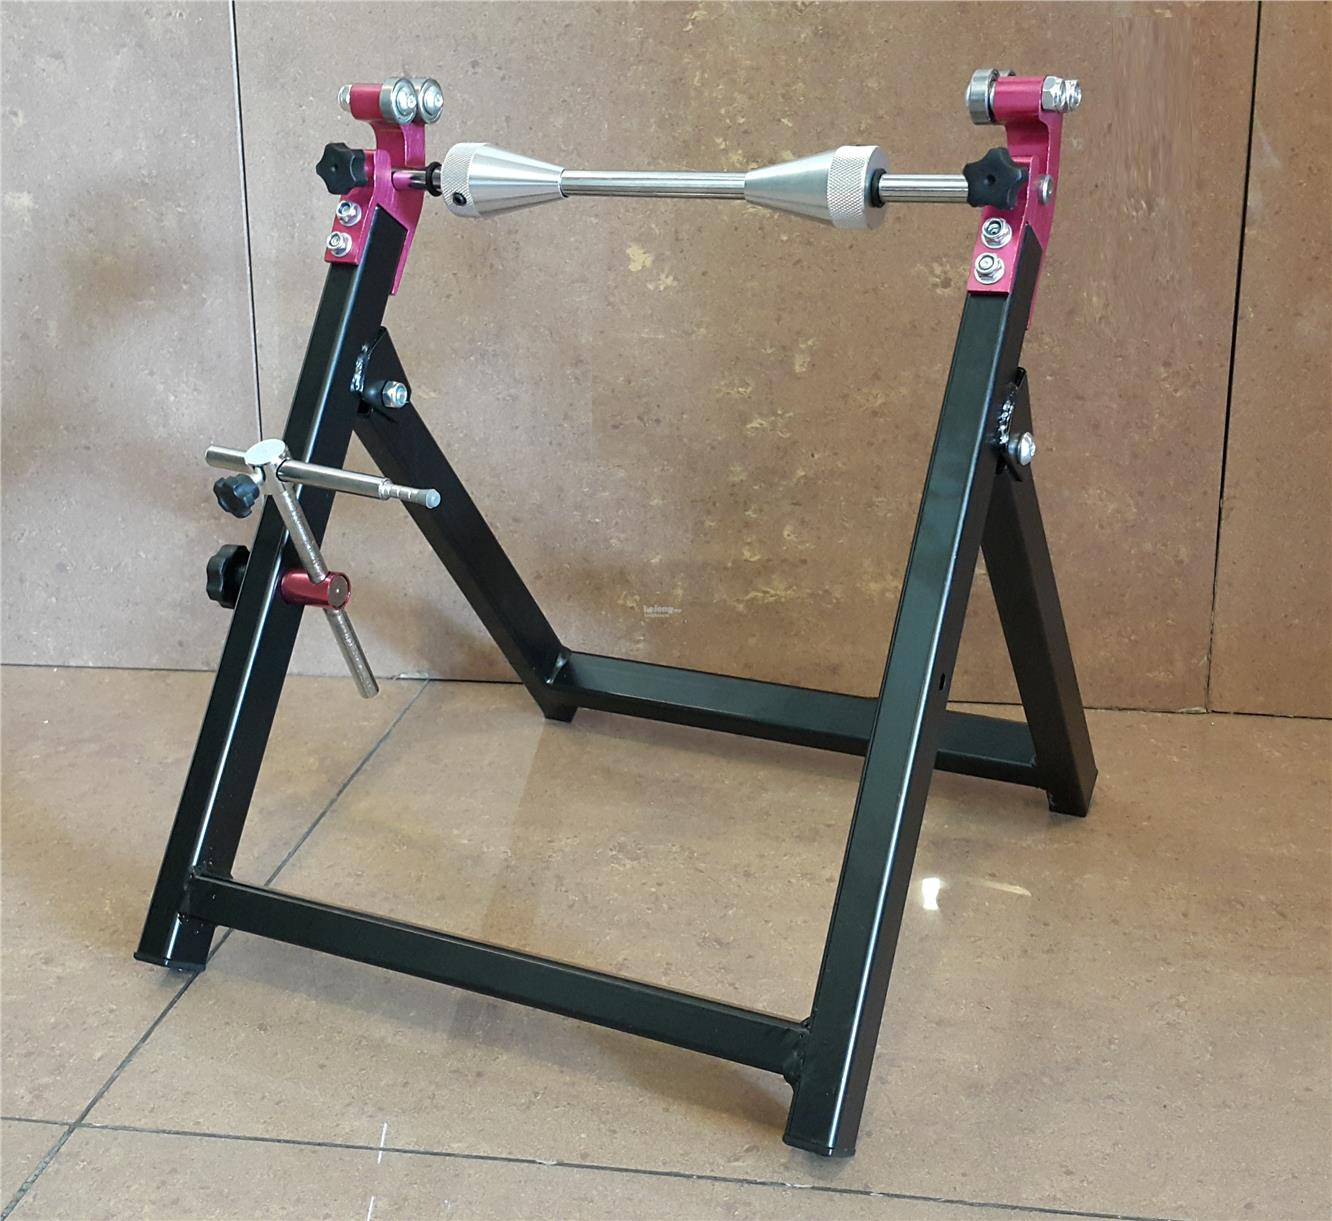 Foldable Motorycycle Wheel Balancer ID229412